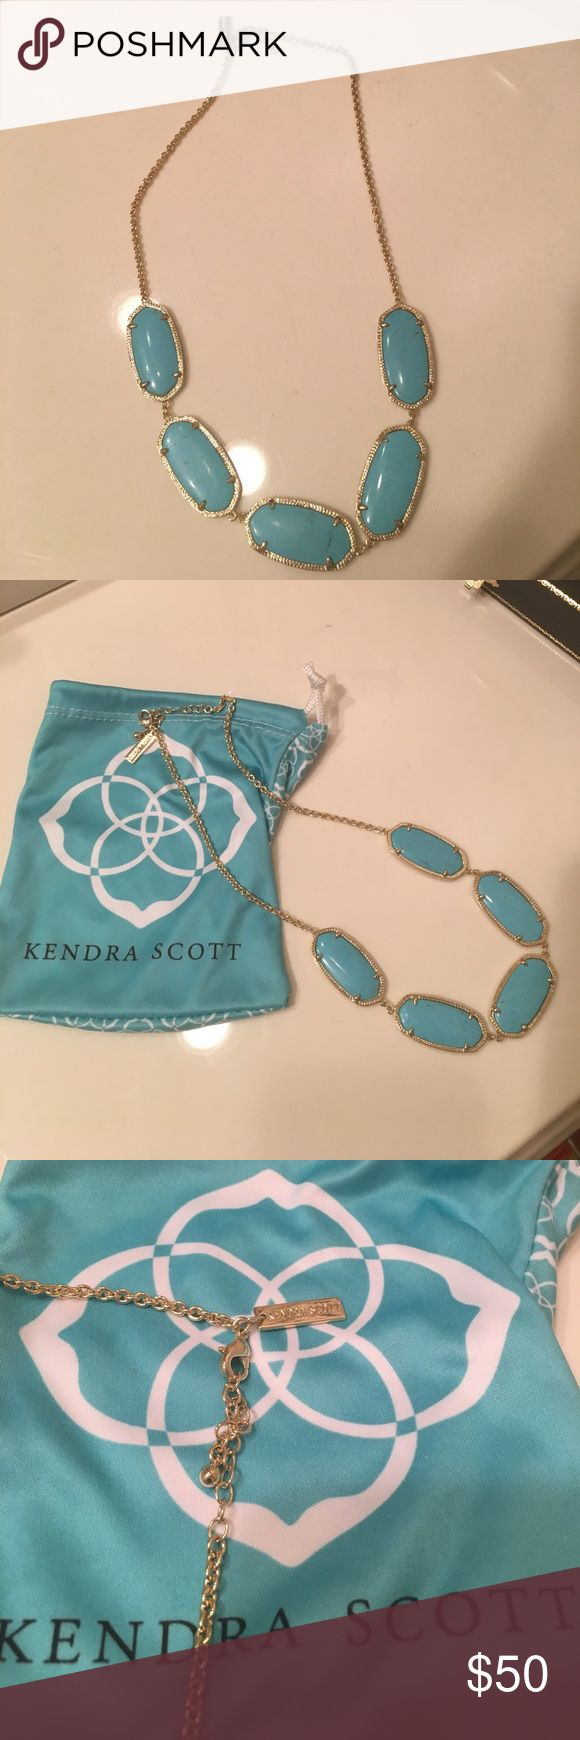 Turquoise Kendra Scott necklace! Turquoise Kendra Scott necklace for sale! Very gently used. Willing to negotiate! Also have matching earrings (not yet listed) if interested. Kendra Scott Jewelry Necklaces